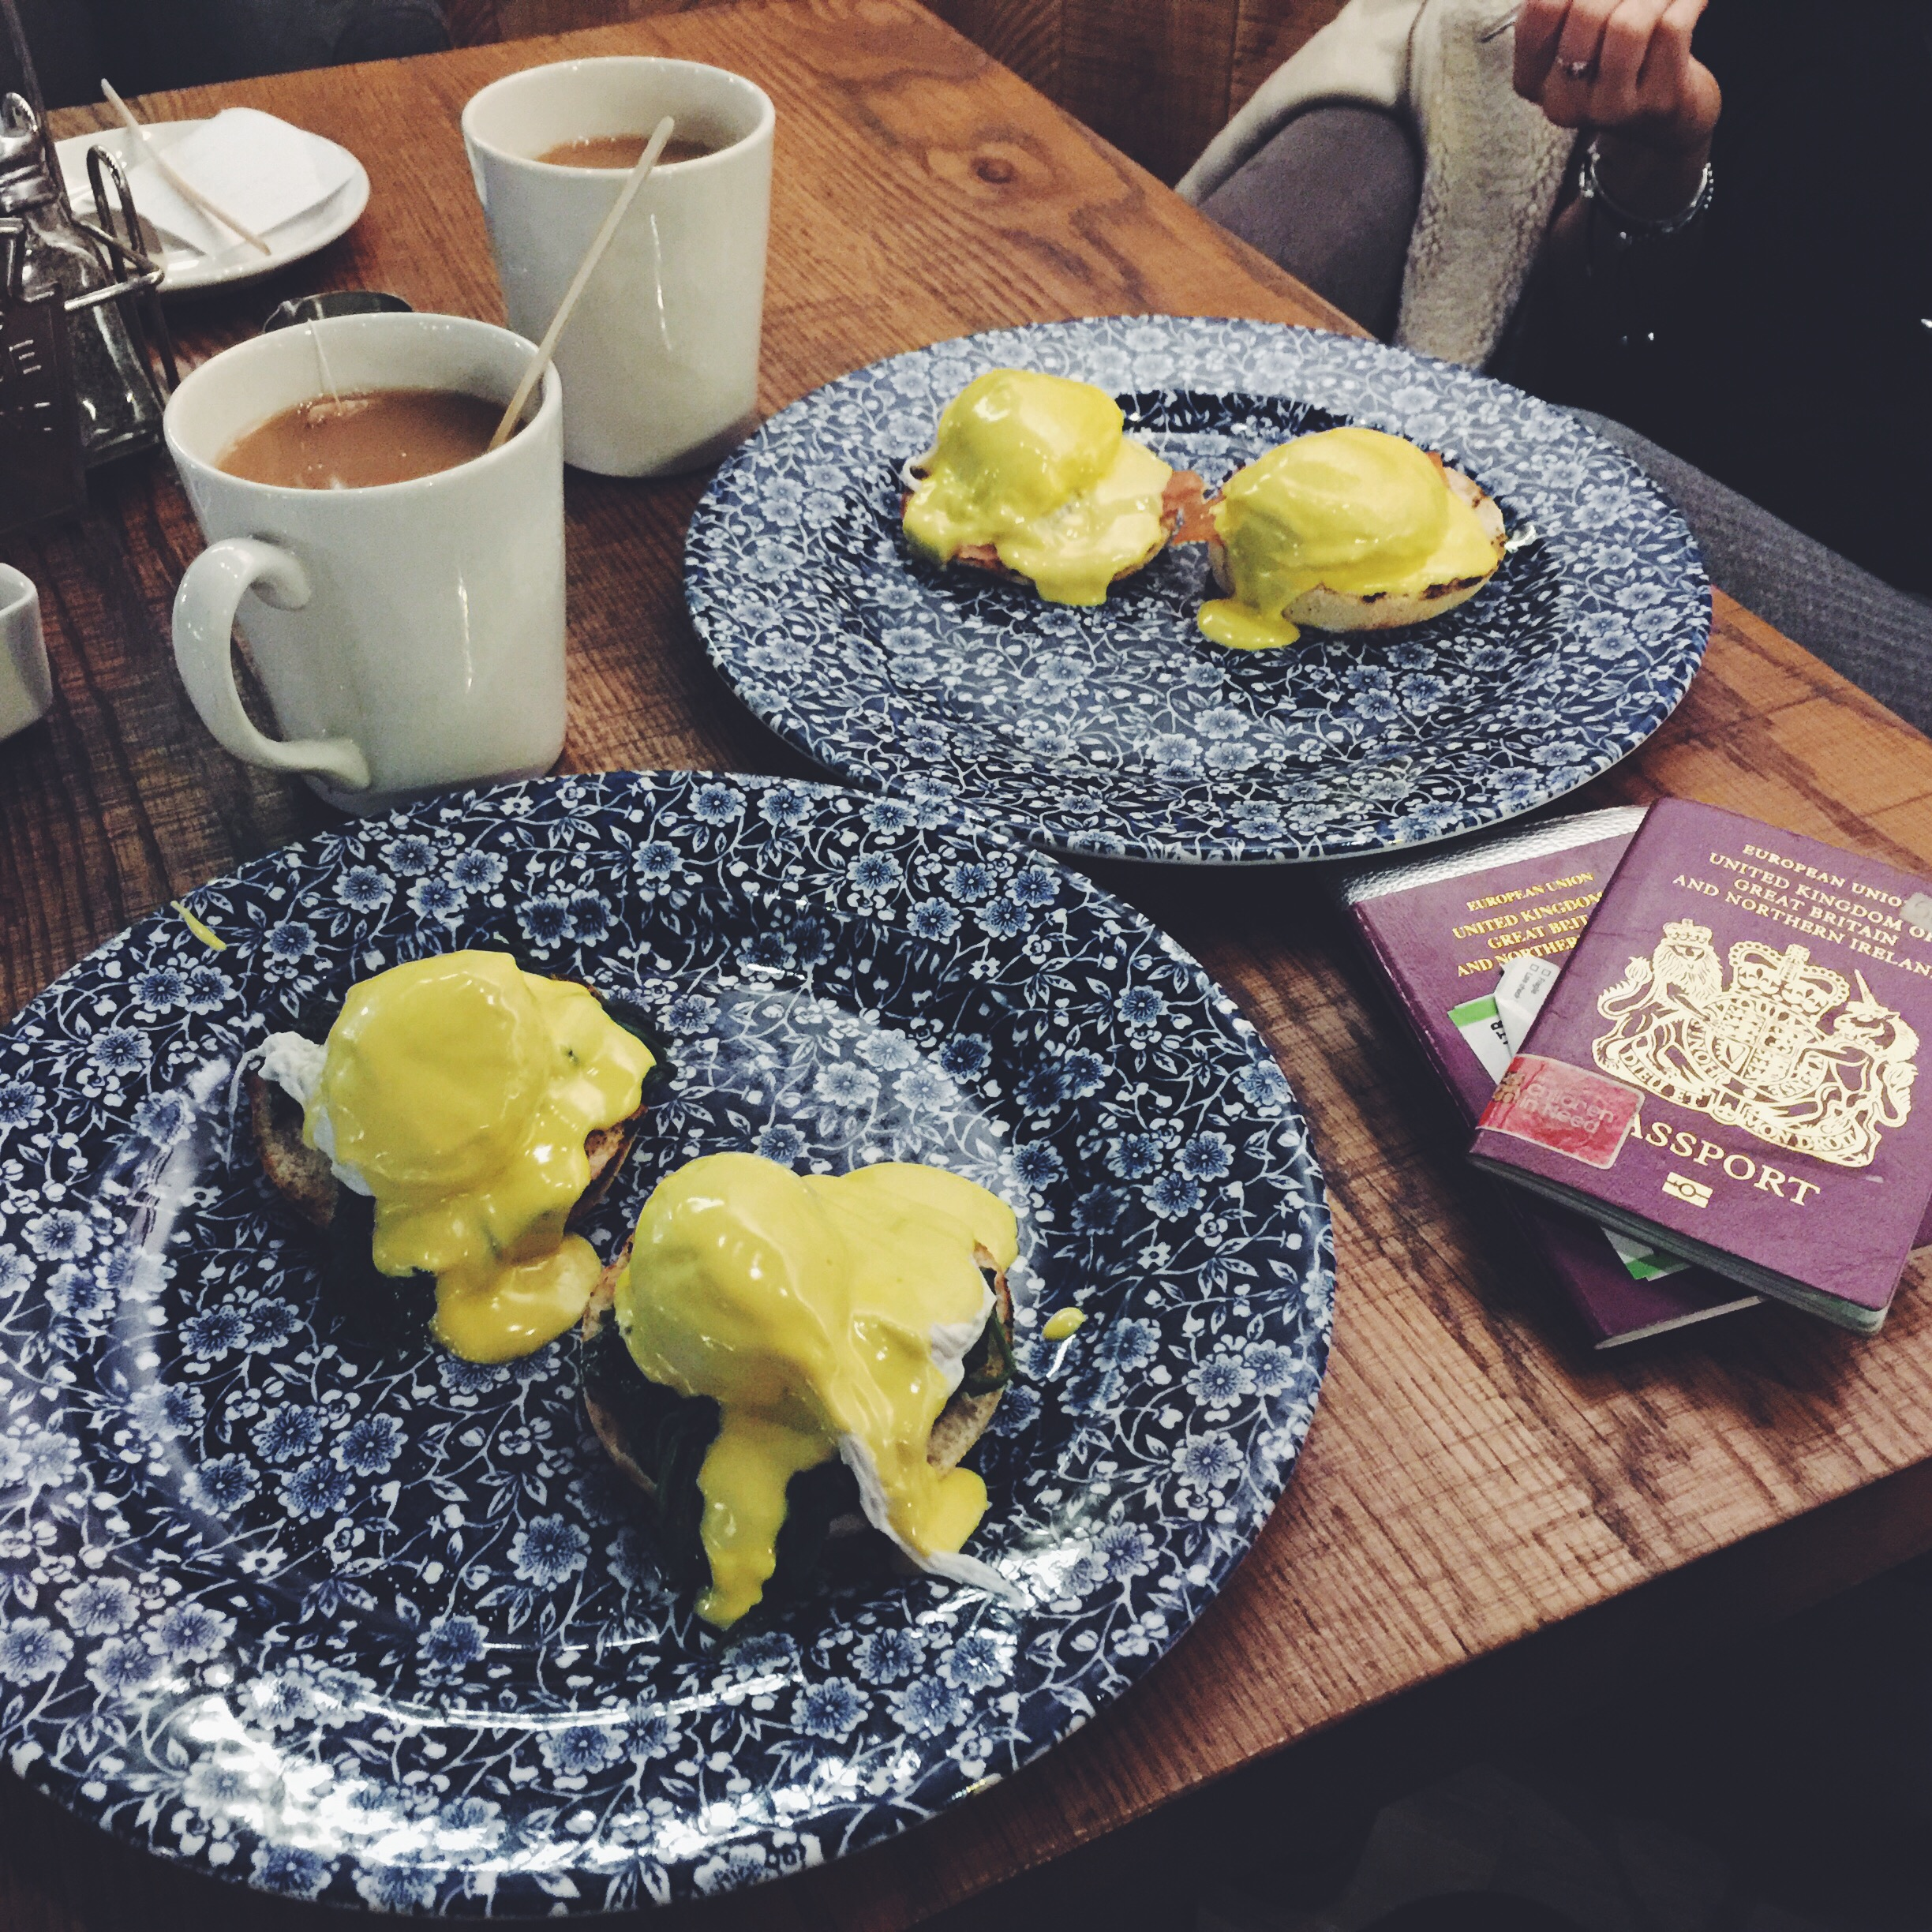 eggs royale, manchester airport